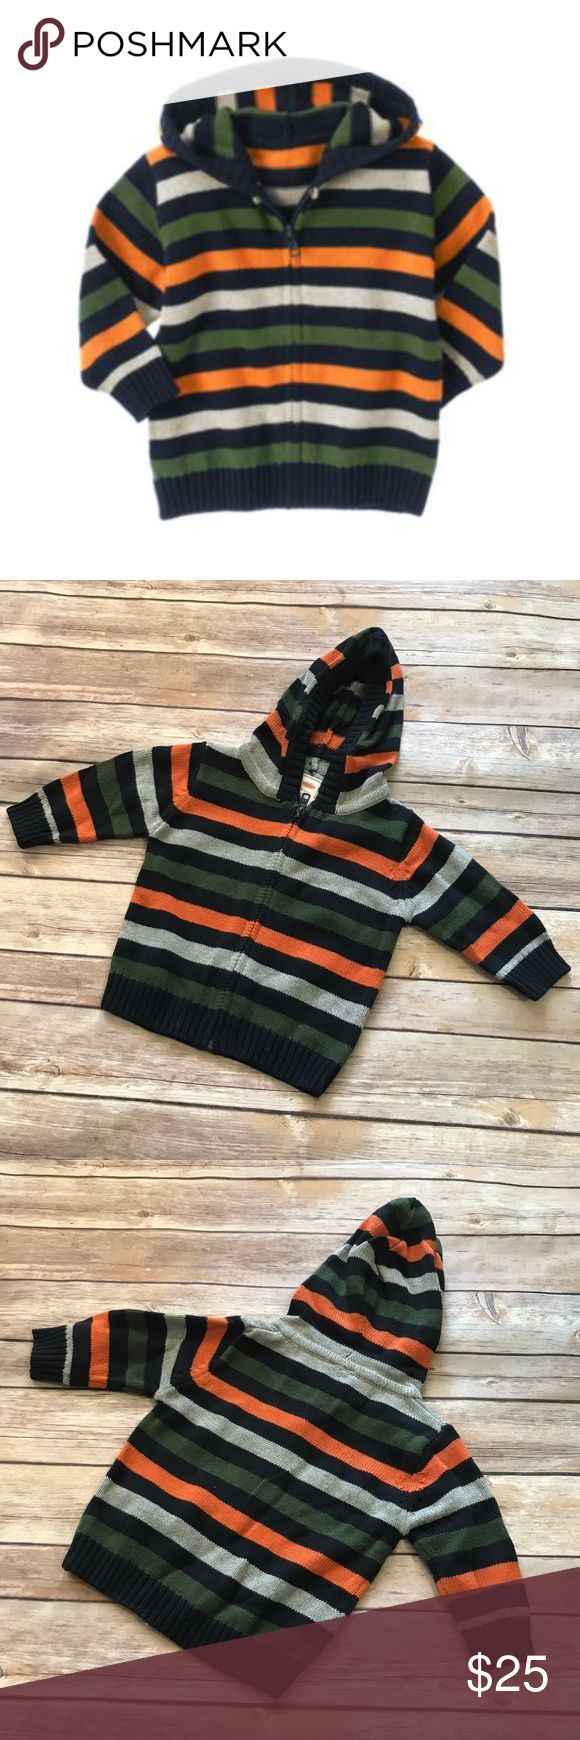 "Gymboree Football Champ Striped Hooded Sweater NEW Gymboree Football Champ Striped Hooded Sweater NEW 3-6 mo Navy Gray Orange Green  Cool stripes for comfy layering. Made from soft cotton sweater yarn, our stylish hooded cardigan features bold intarsia knit stripes and zip front design. Finished with ribbed trim on the hood, cuffs and hem.  100% cotton Machine washable Imported Collection Name: Football Champ  12"" long 11.5"" p to p Gymboree Shirts & Tops Sweaters"